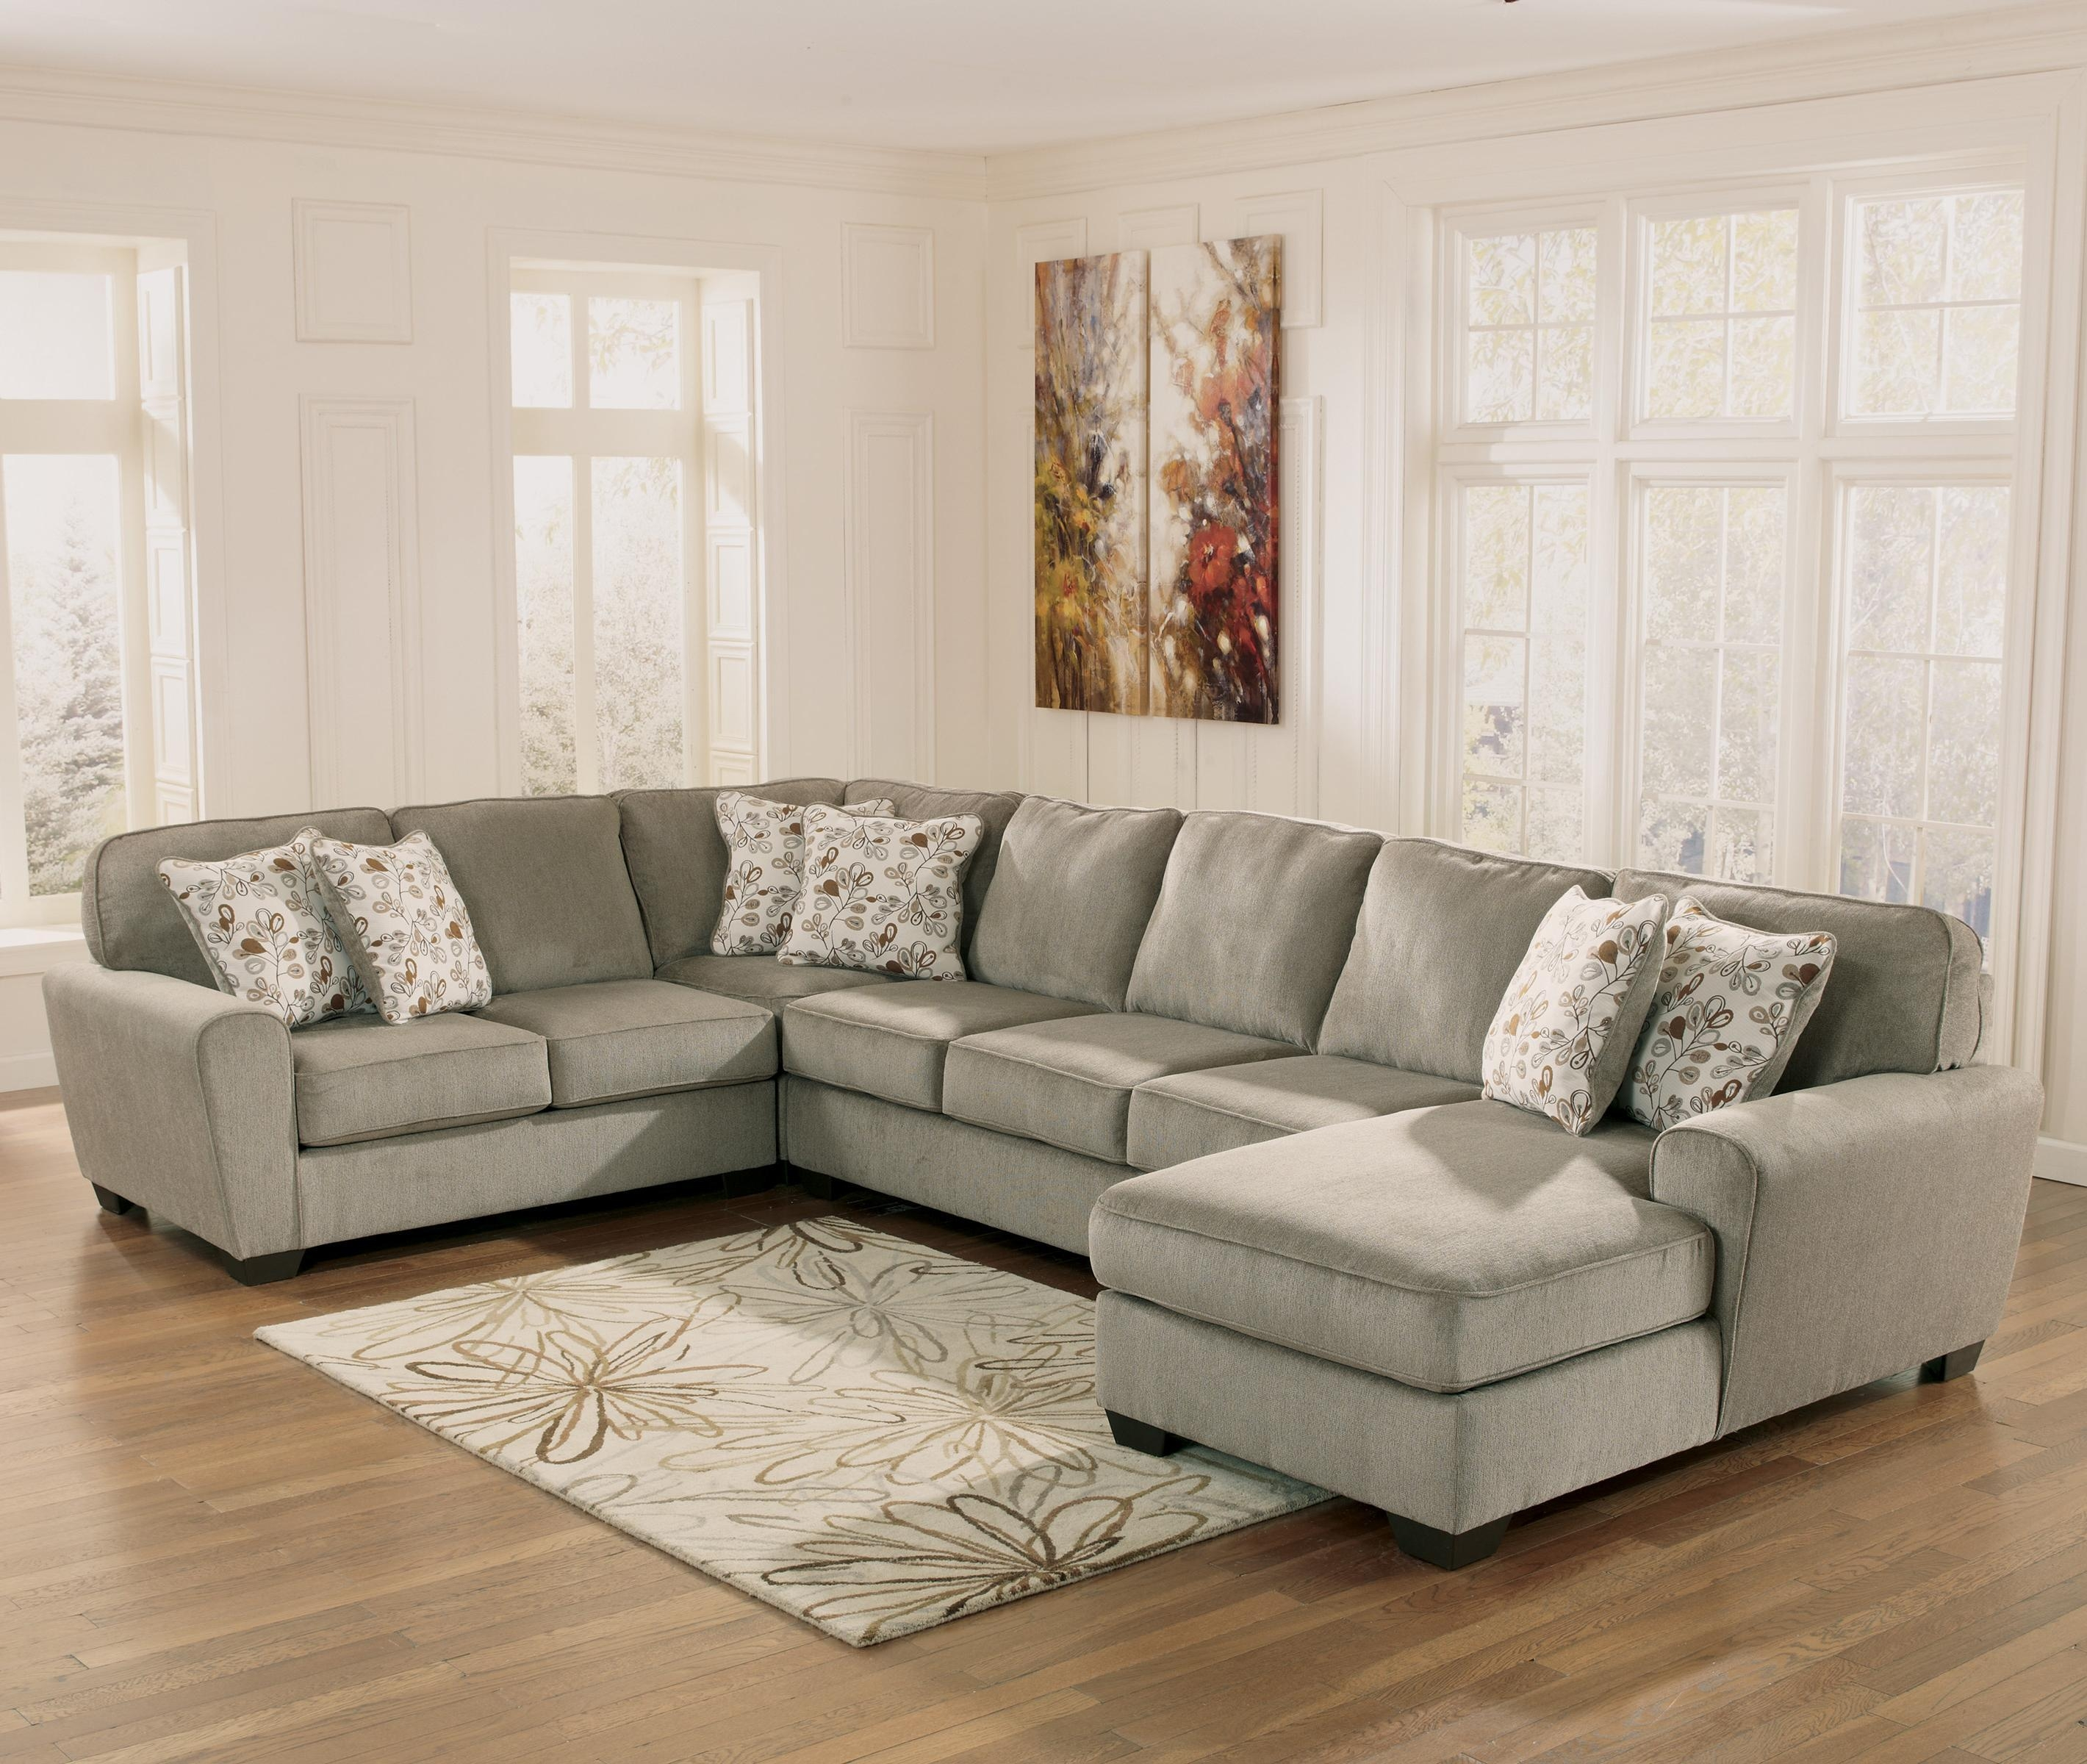 Ashley Furniture Patola Park – Patina 4 Piece Sectional With Right With Ashley Furniture Brown Corduroy Sectional Sofas (Image 1 of 20)